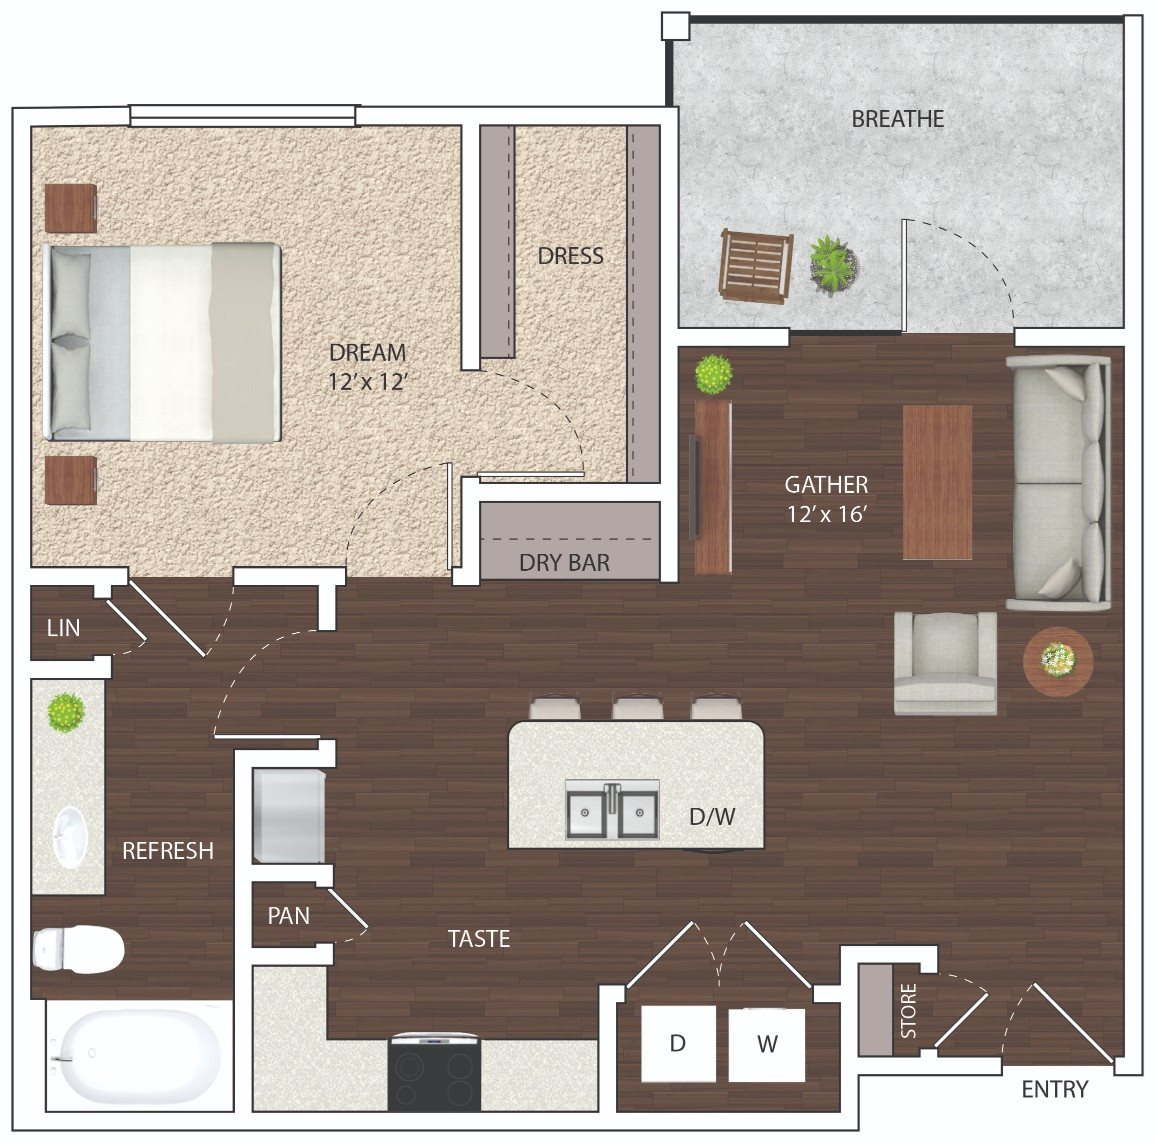 A2 - Phase I Floor Plan 3